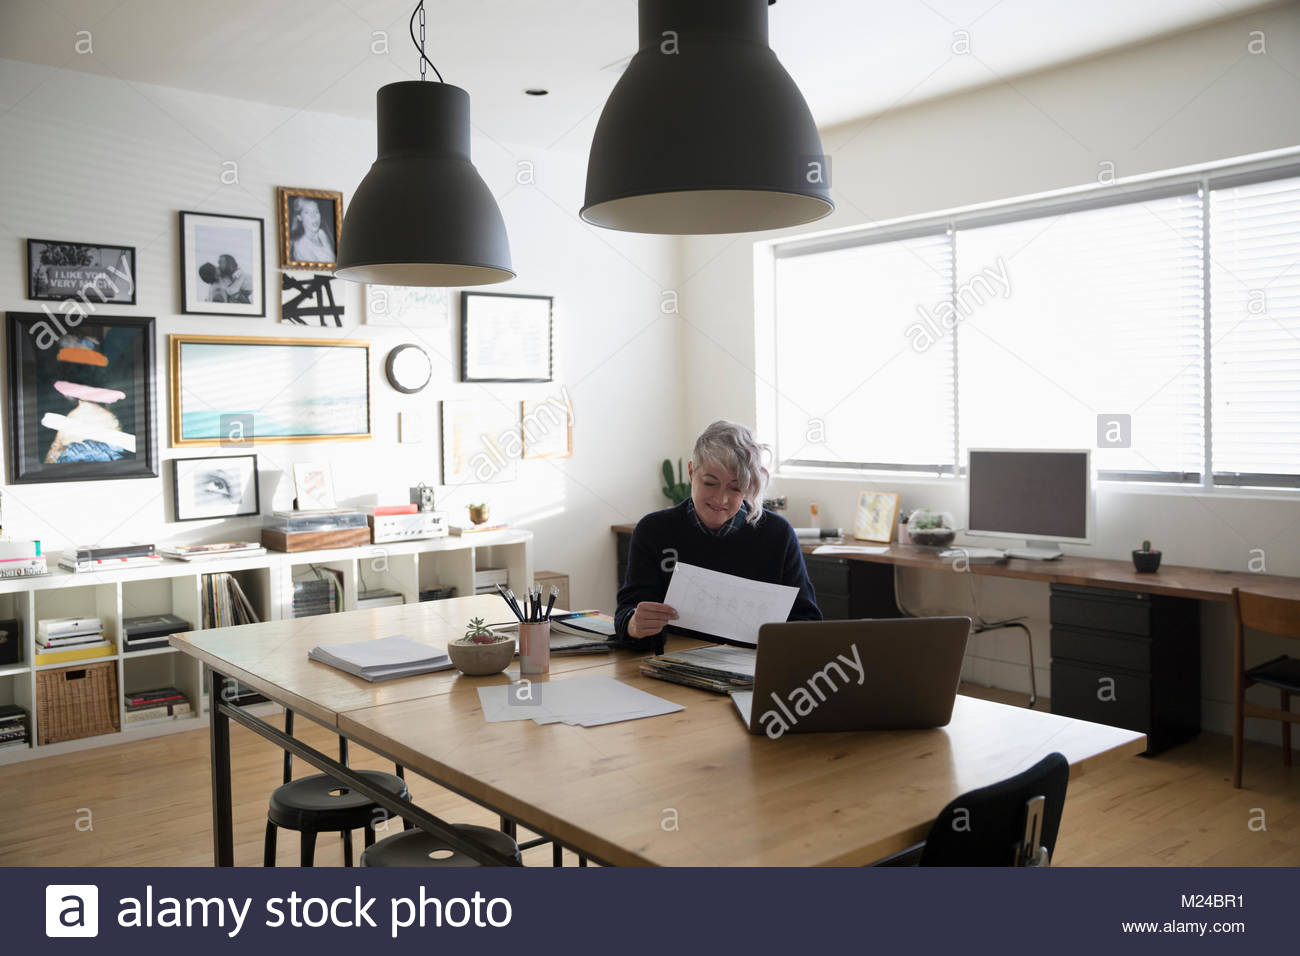 Creative businesswoman entrepreneur working in studio office - Stock Image